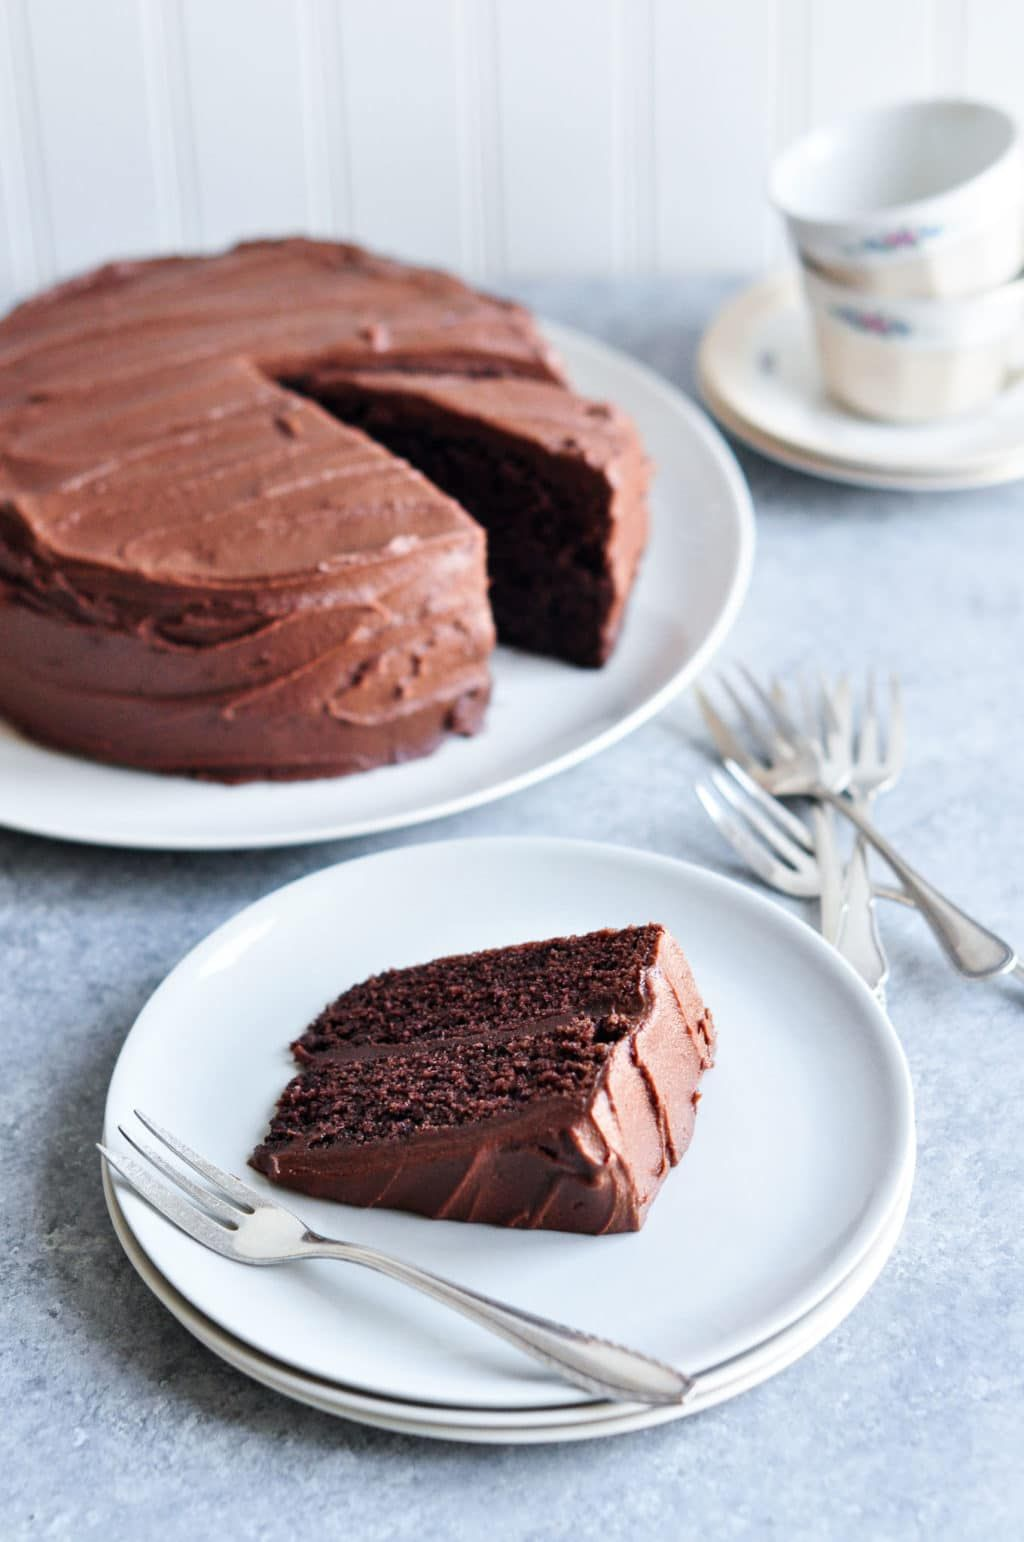 Sour Cream Chocolate Cake With Step By Step Photos Eat Little Bird Recipe Sour Cream Chocolate Cake Cake Recipes Chocolate Cake Recipe